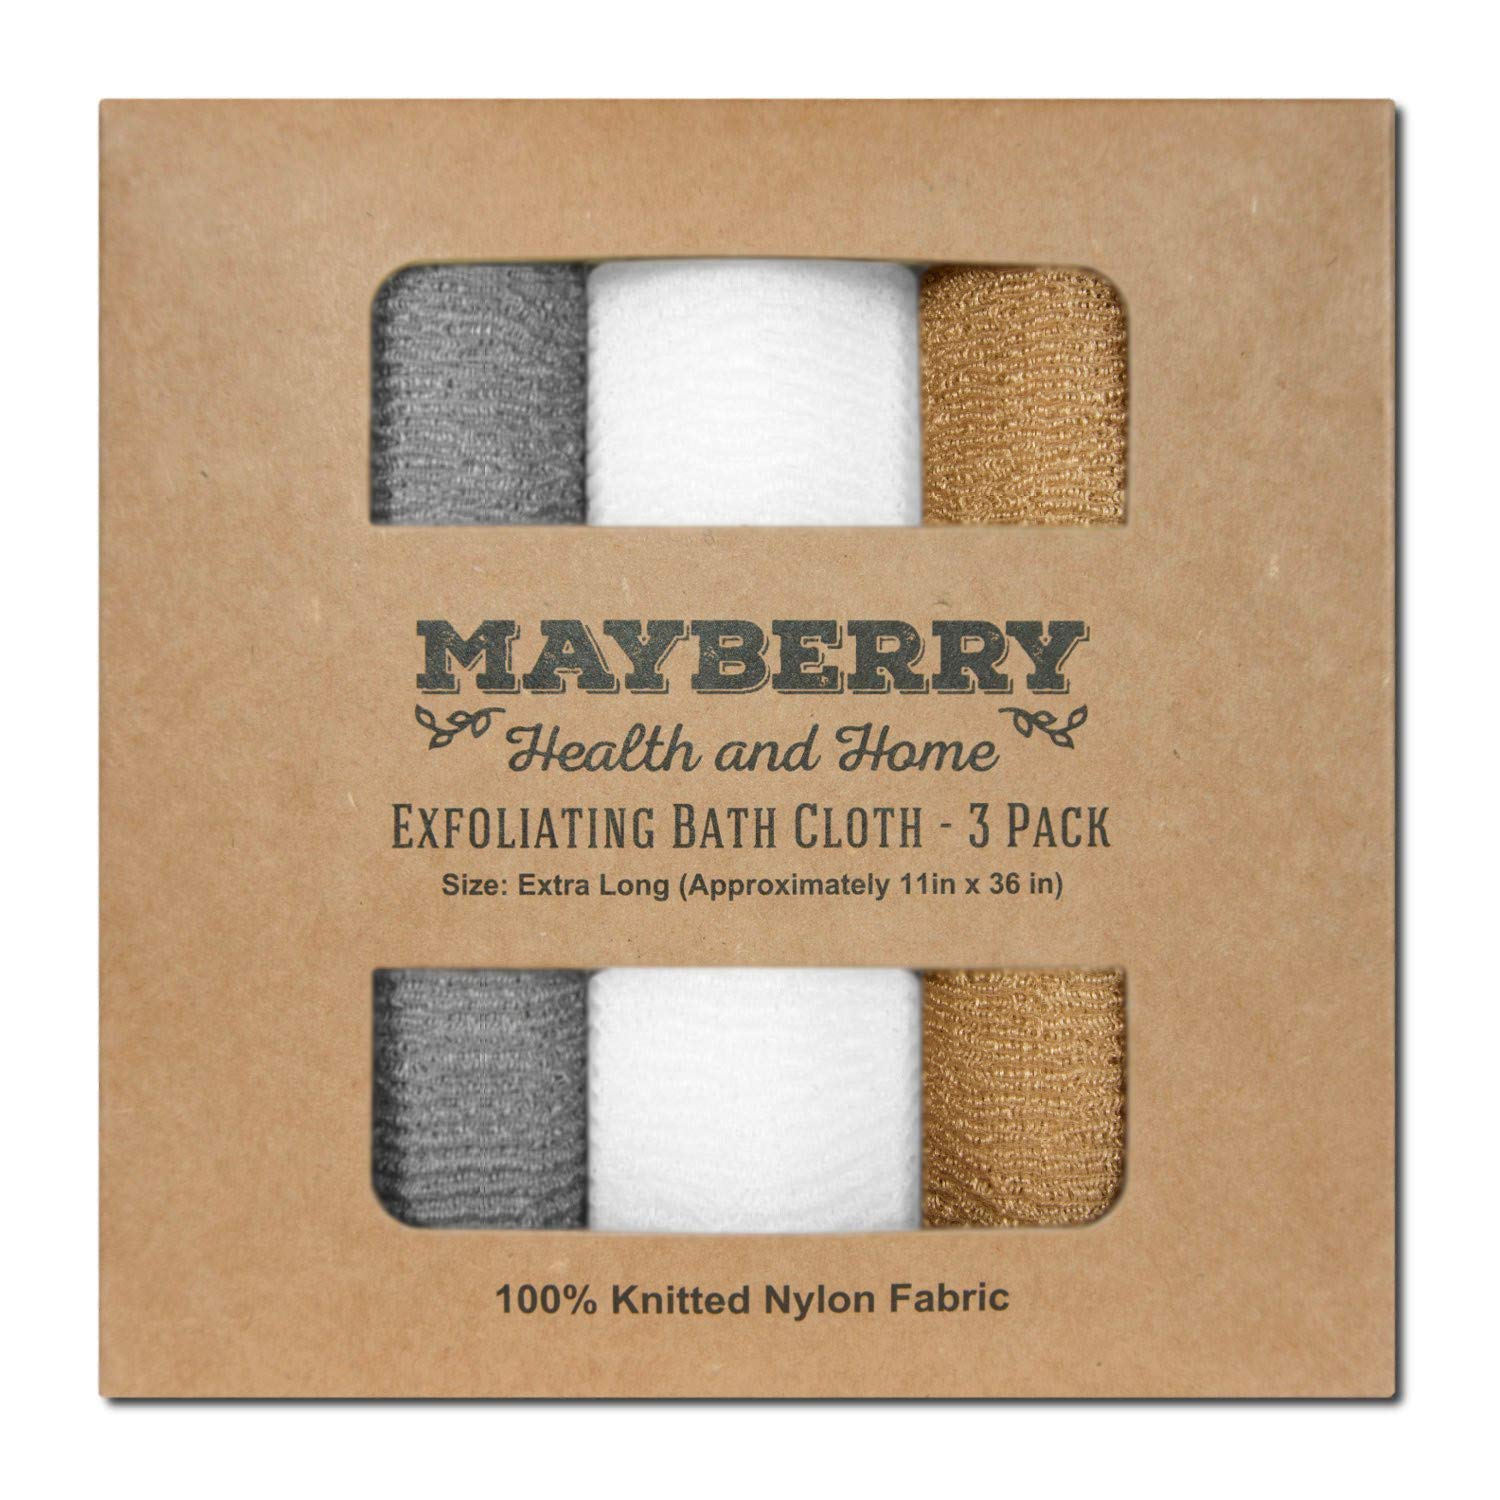 Extra Long (36 Inches) Exfoliating Bath Cloth (3 Pack) Gray, White, and Brown Nylon Bath Towel, Stitching on All Sides for Added Durability